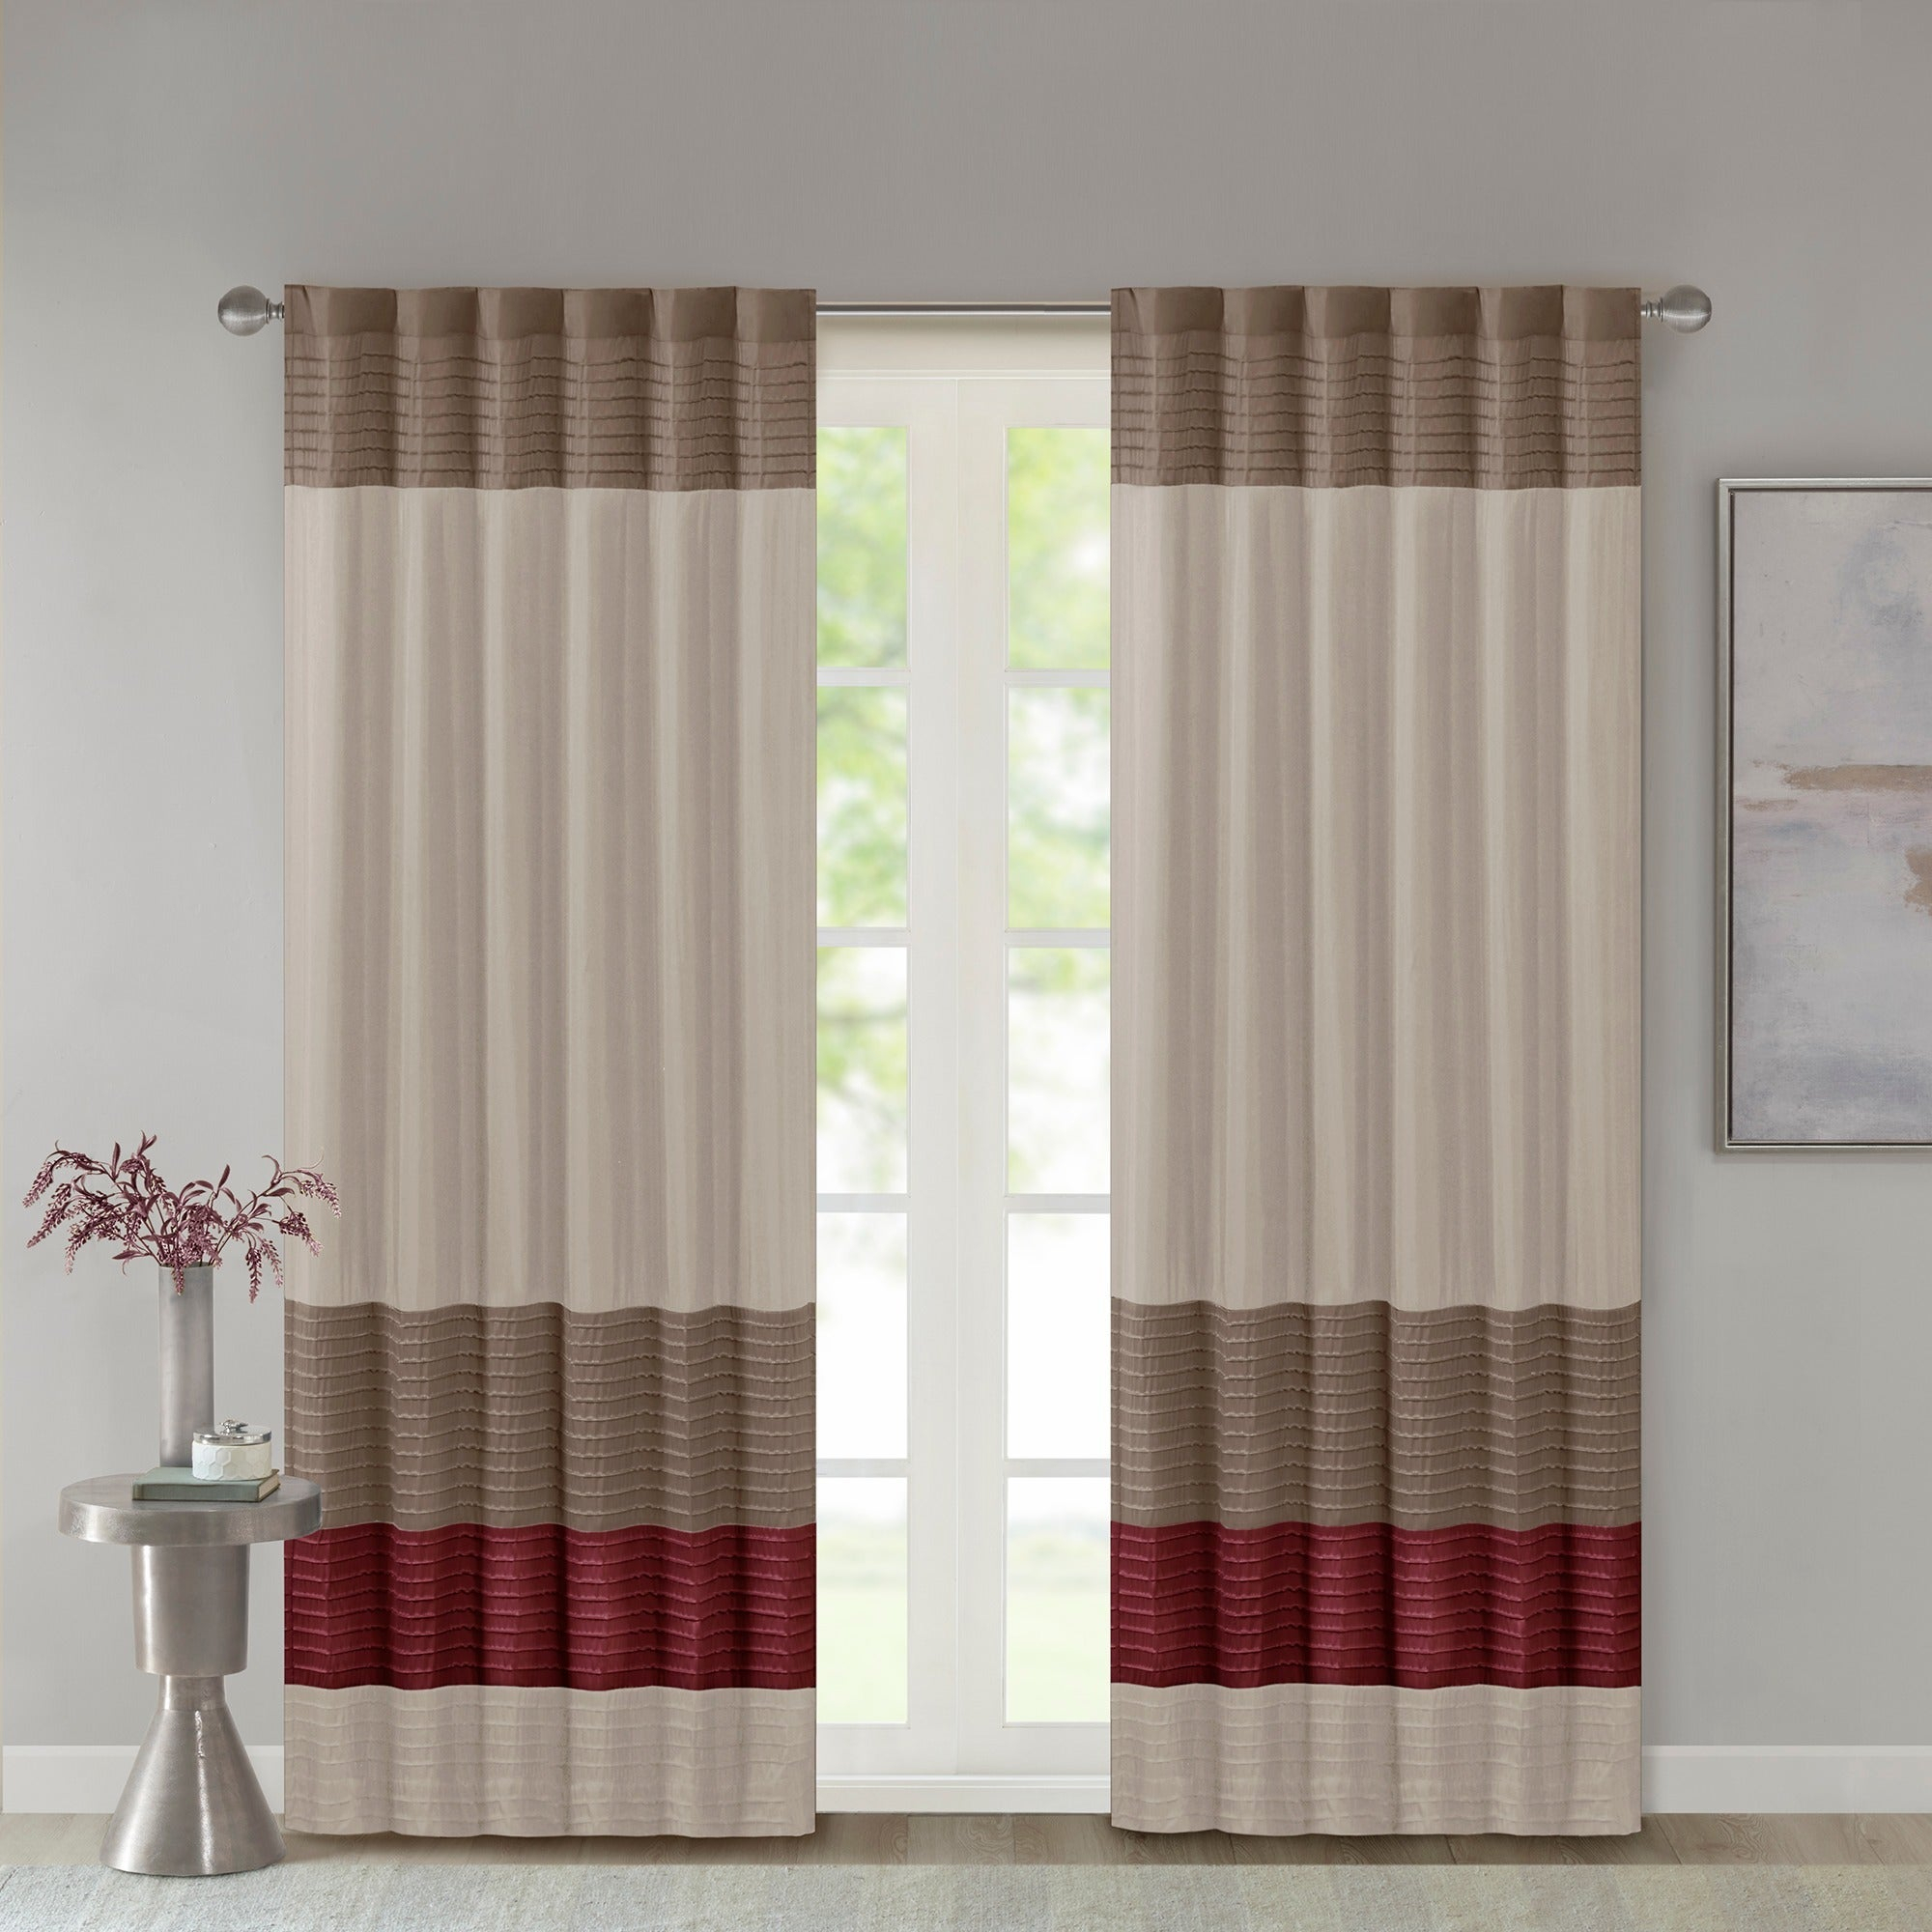 Madison Park Tradewinds Polyoni Pintuck Single Curtain Panel – 50 X 84 With Regard To Chester Polyoni Pintuck Curtain Panels (View 9 of 20)